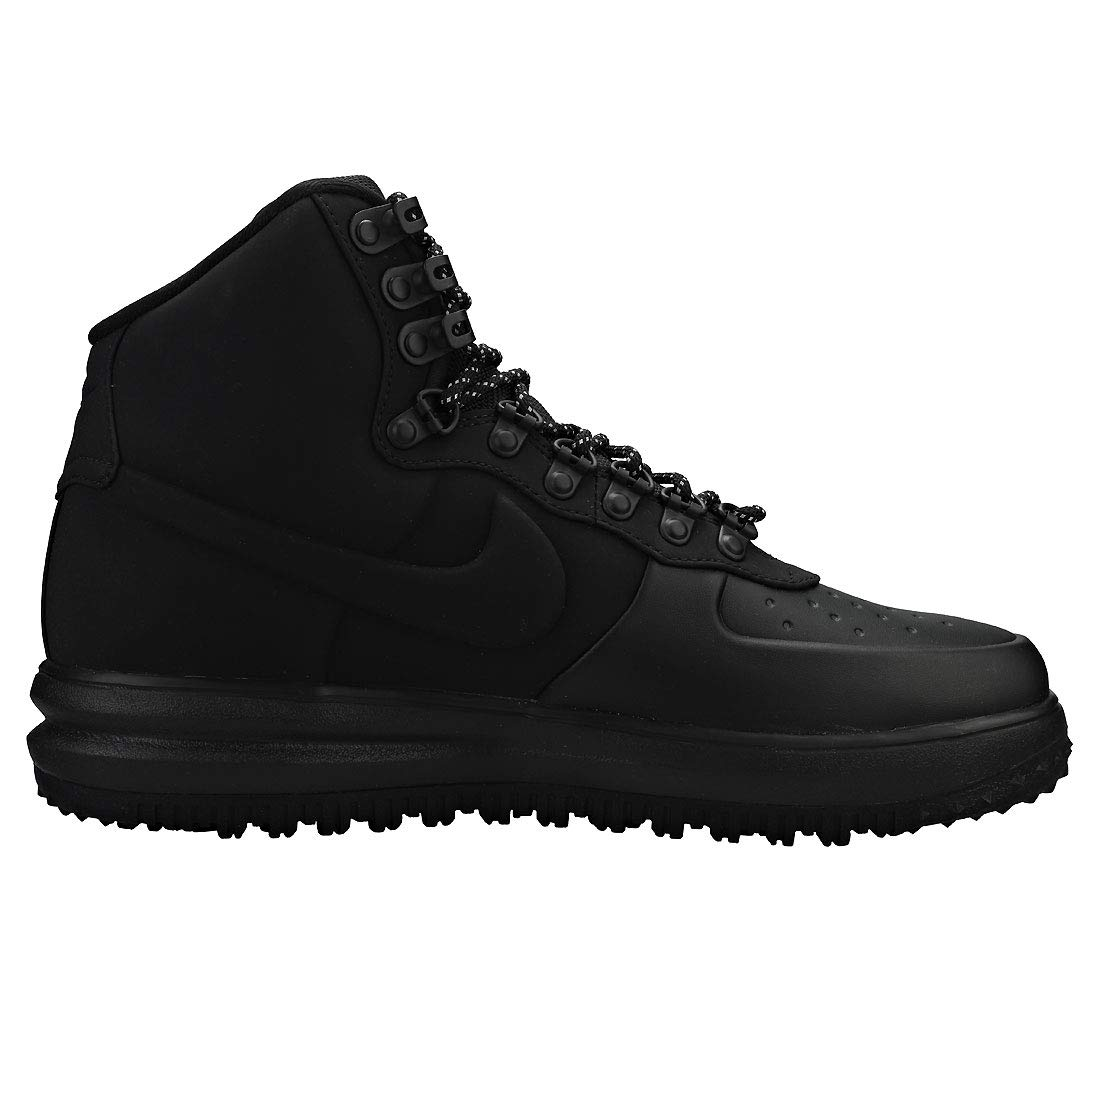 buy online 8609a d4c3e Amazon.com   Nike Lunar Force 1 Duckboot  18 Mens Bq7930-003   Shoes